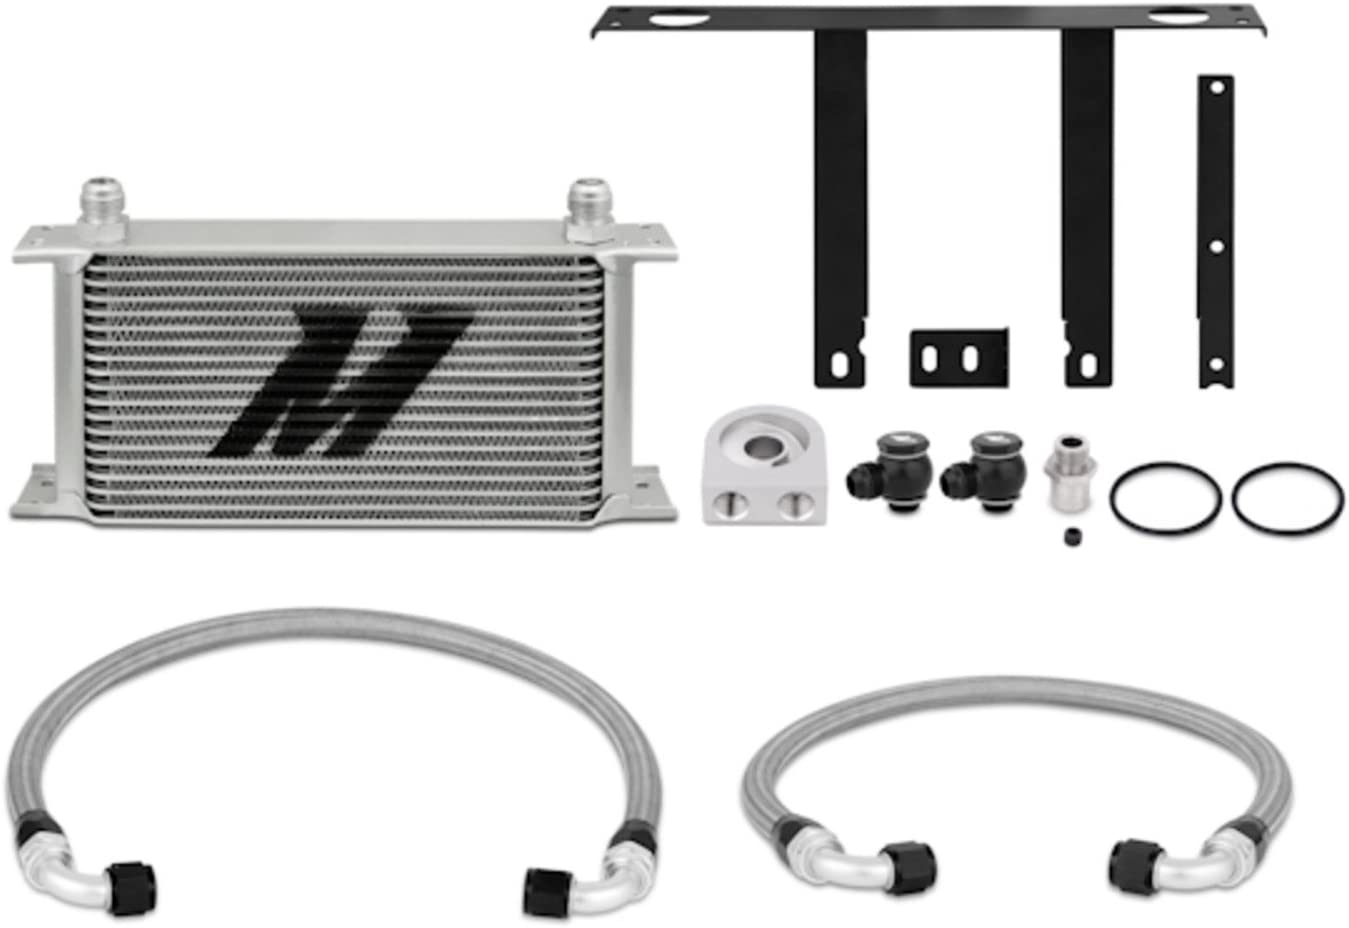 Mishimoto MMOC-GEN4-10 Oil Cooler Kit Compatible With Hyundai Genesis Coupe 2.0T 2010-2012 Silver